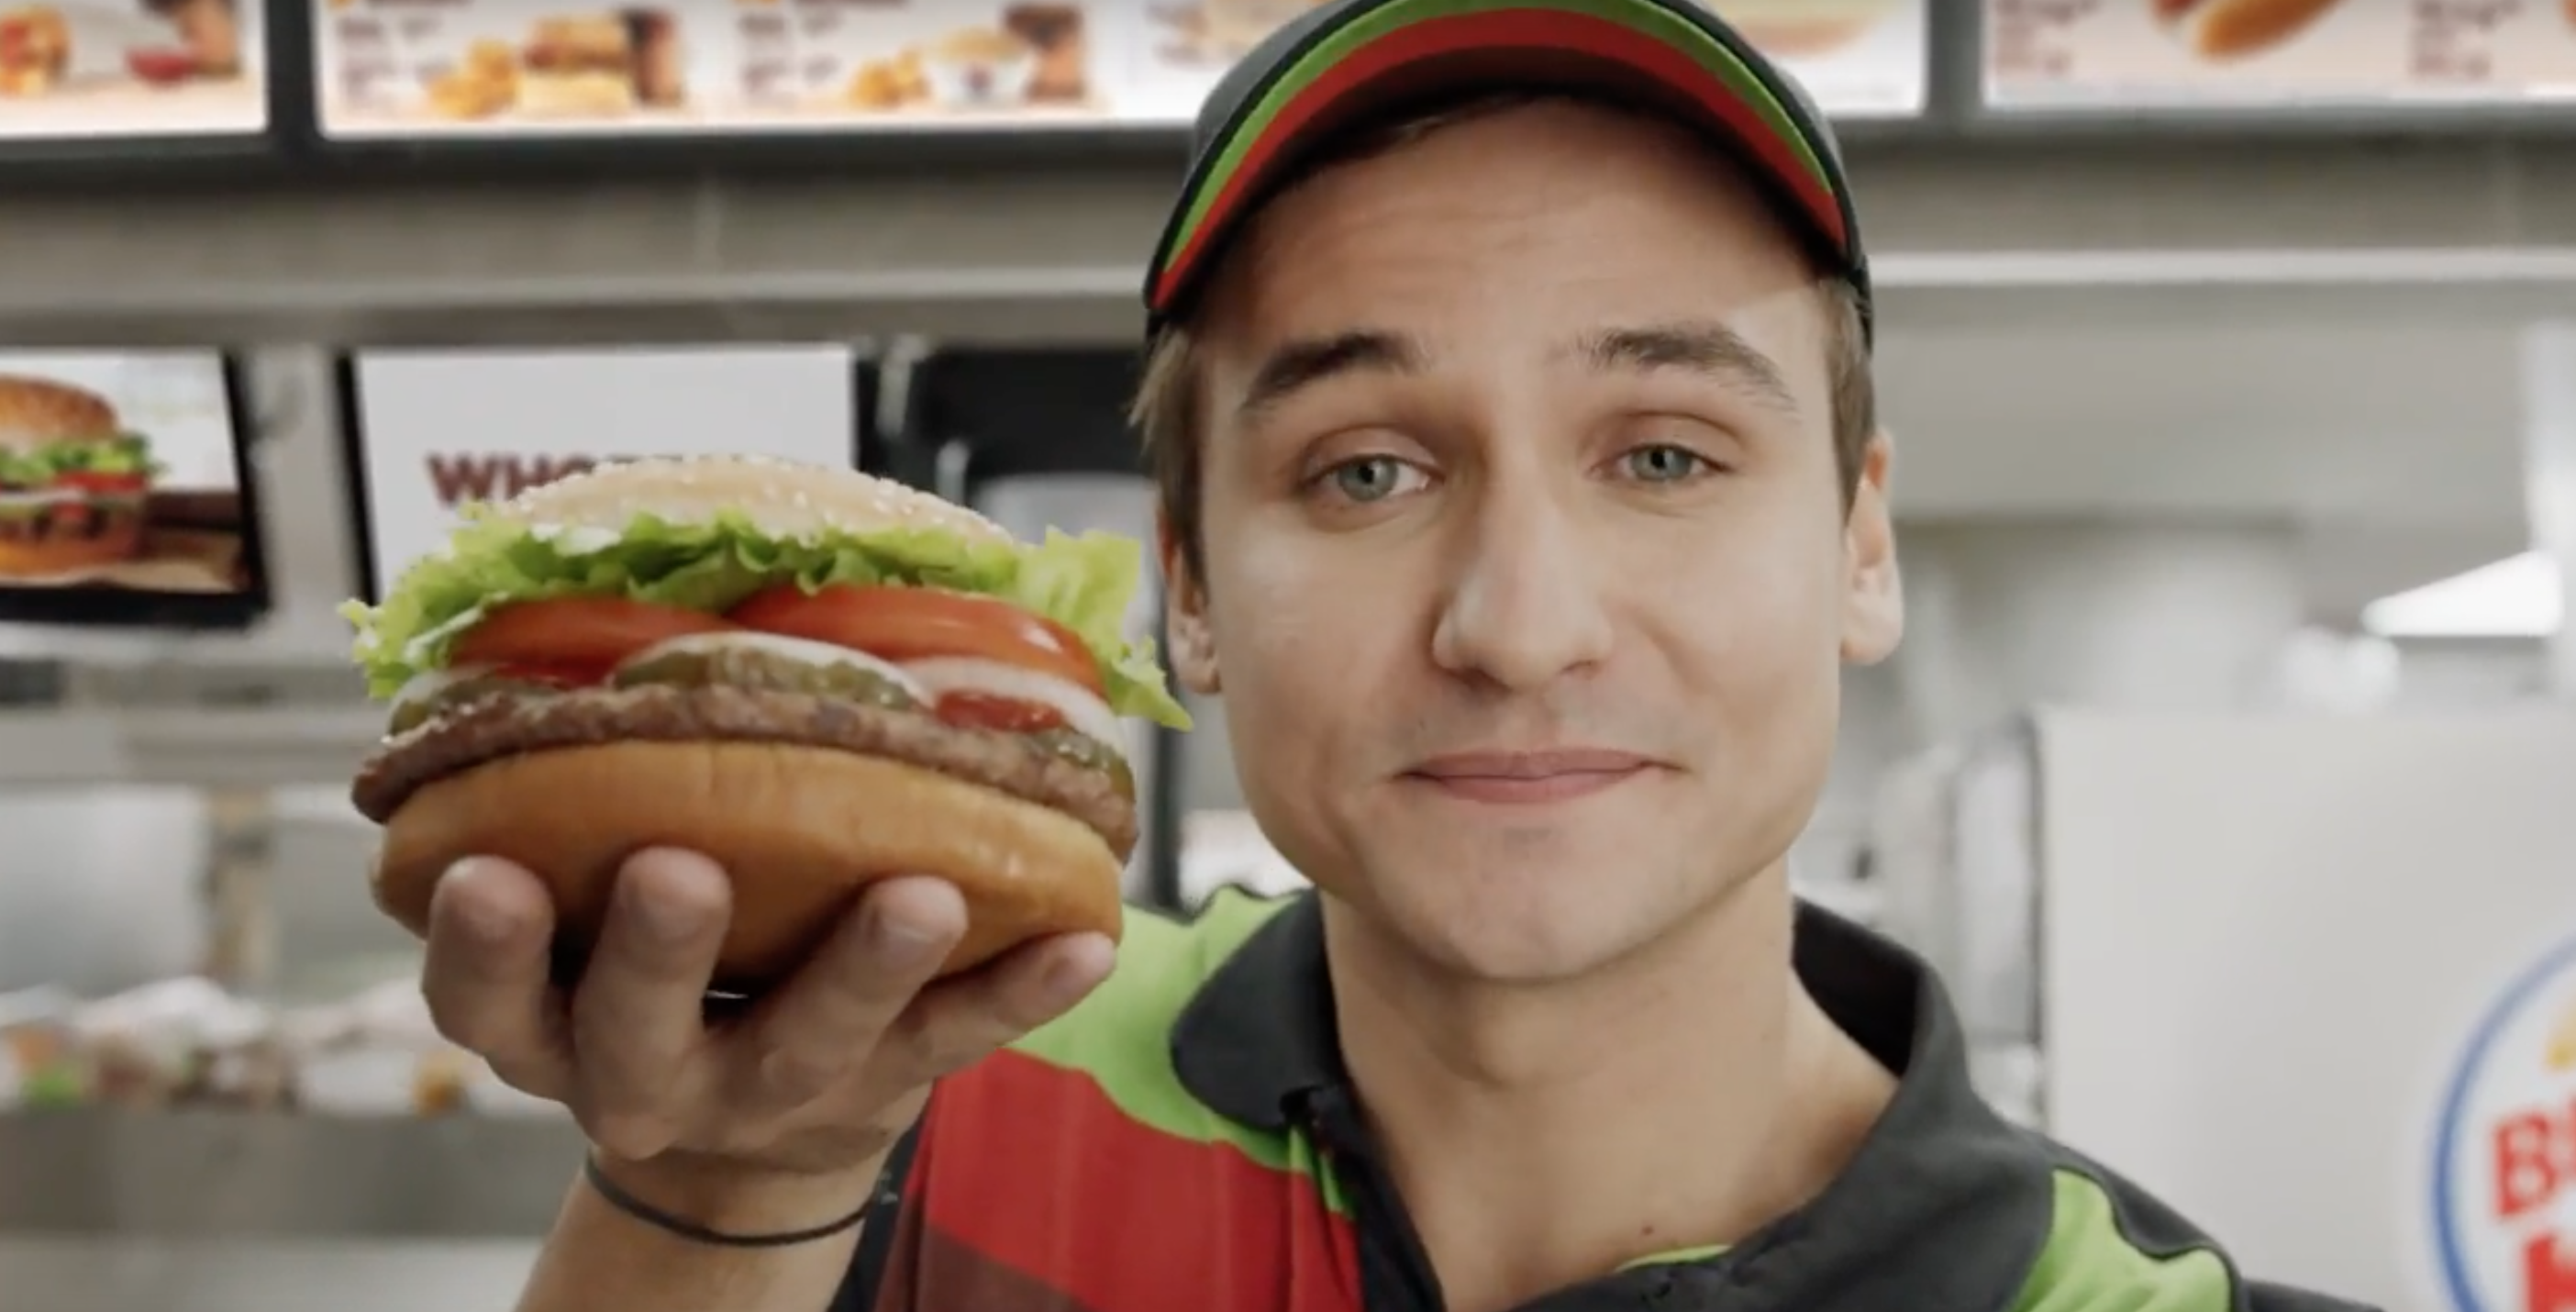 Burger King's Dystopian New Ad Campaign Is Already A Cyanide And Toenail Clippings Disaster